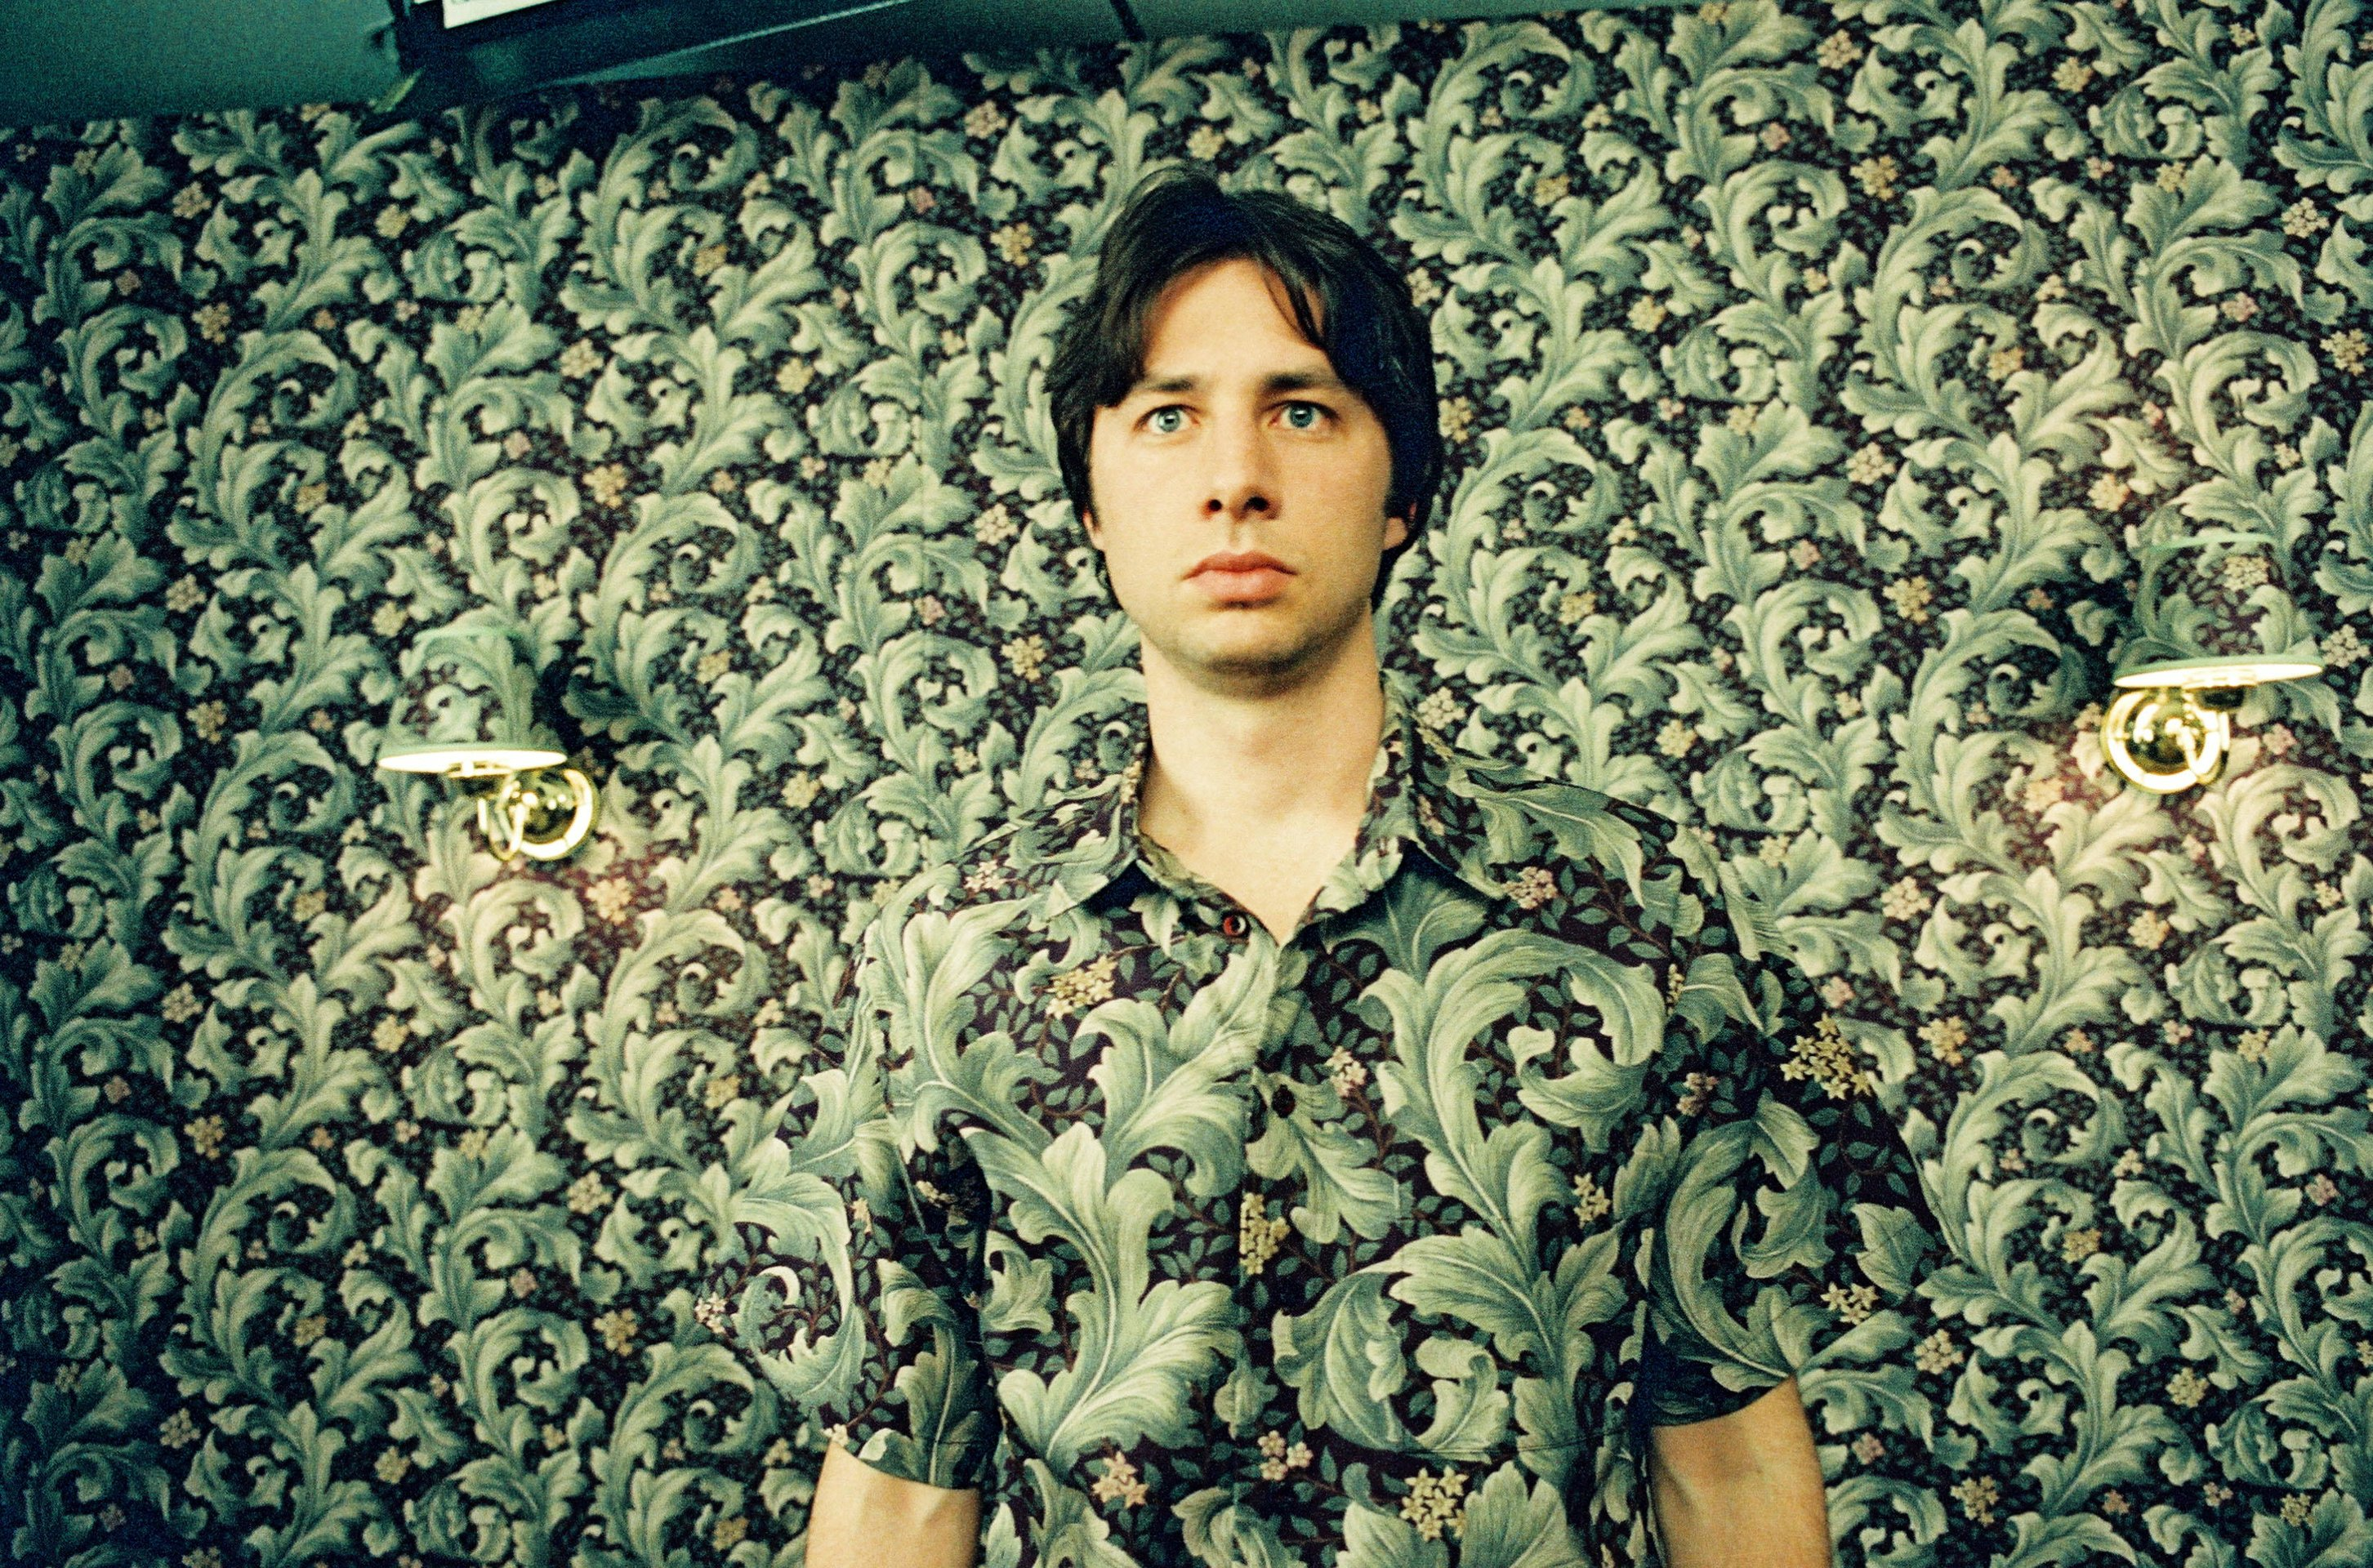 movies garden state by zach braff essay Buy garden state: read 639 movies & tv reviews - amazoncom zach braff is a tremendously talented actor as evidenced by the way he is subsumed by the.